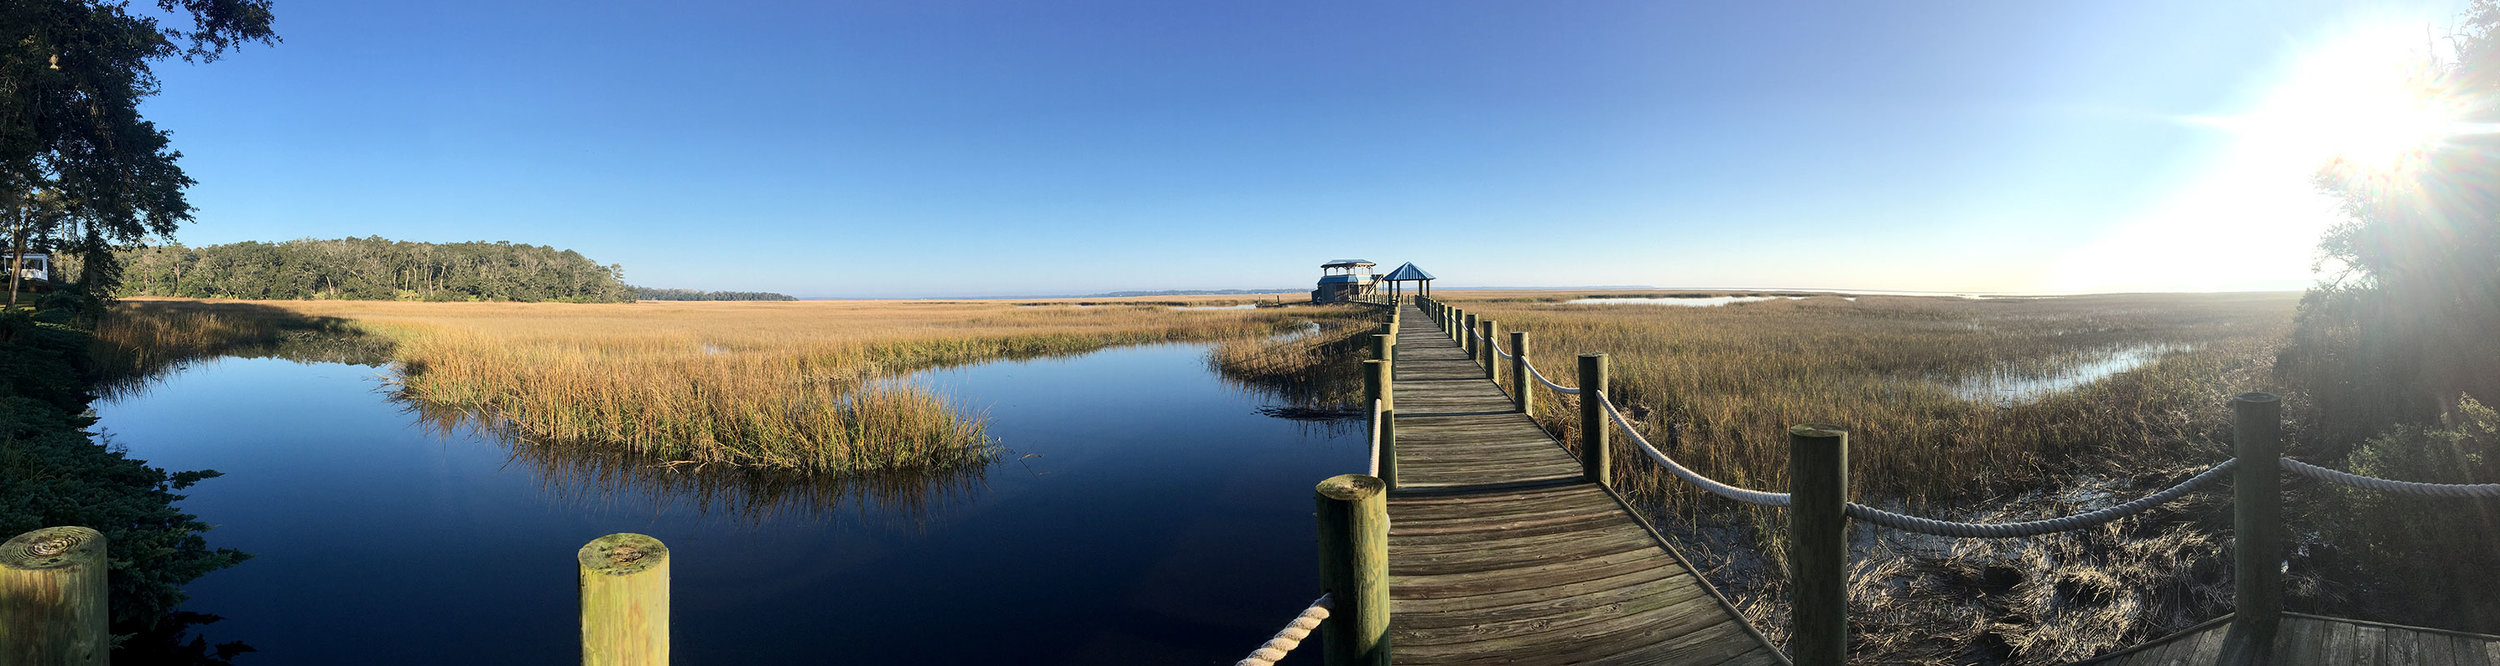 PHOTO: Our location…overlooking a tidal marsh, Florida coastline.